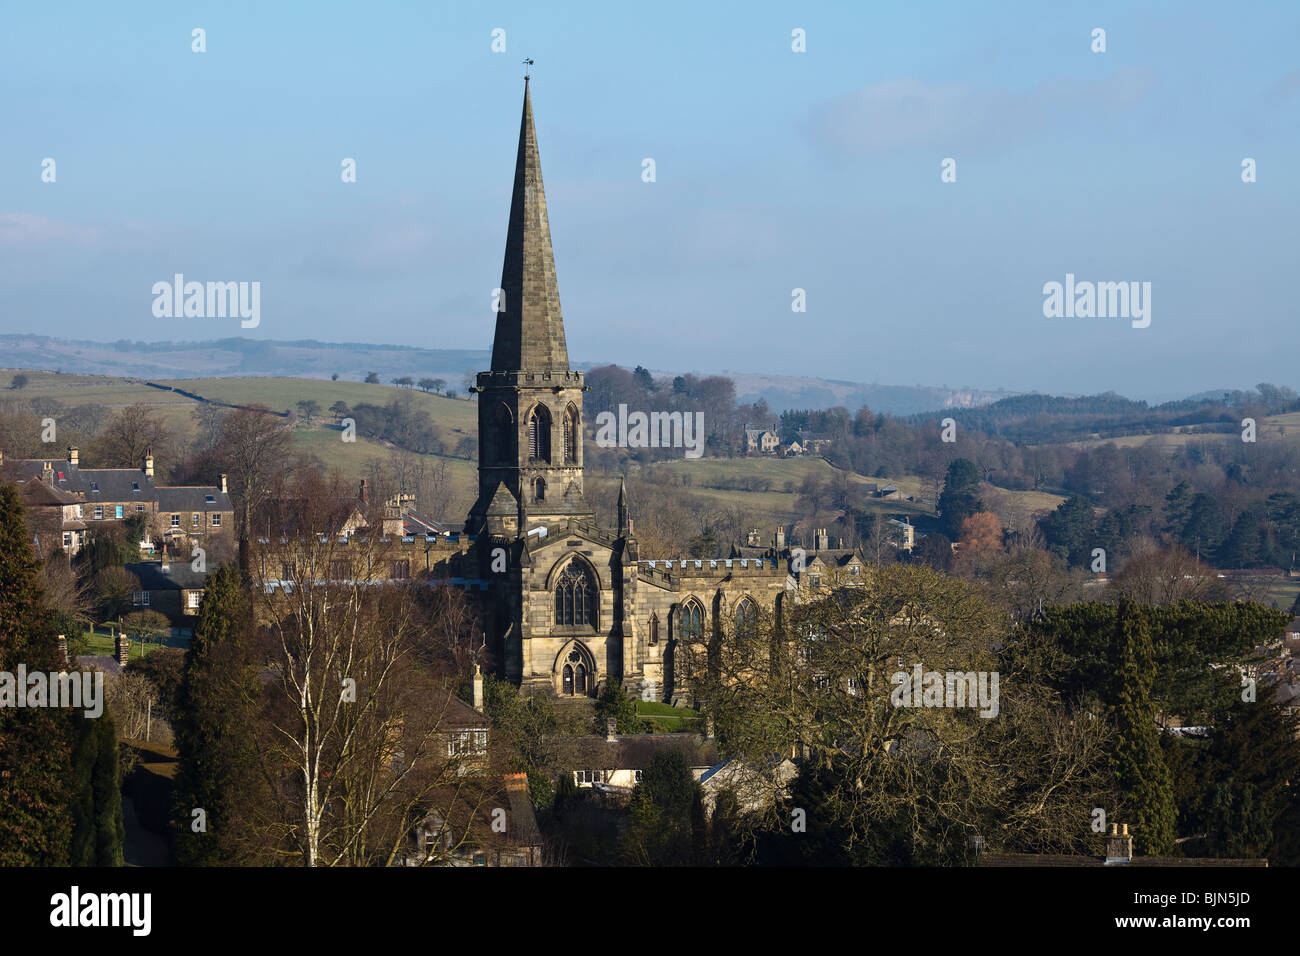 View of Bakewell and the Parish Church of All Saints, Derbyshire. - Stock Image